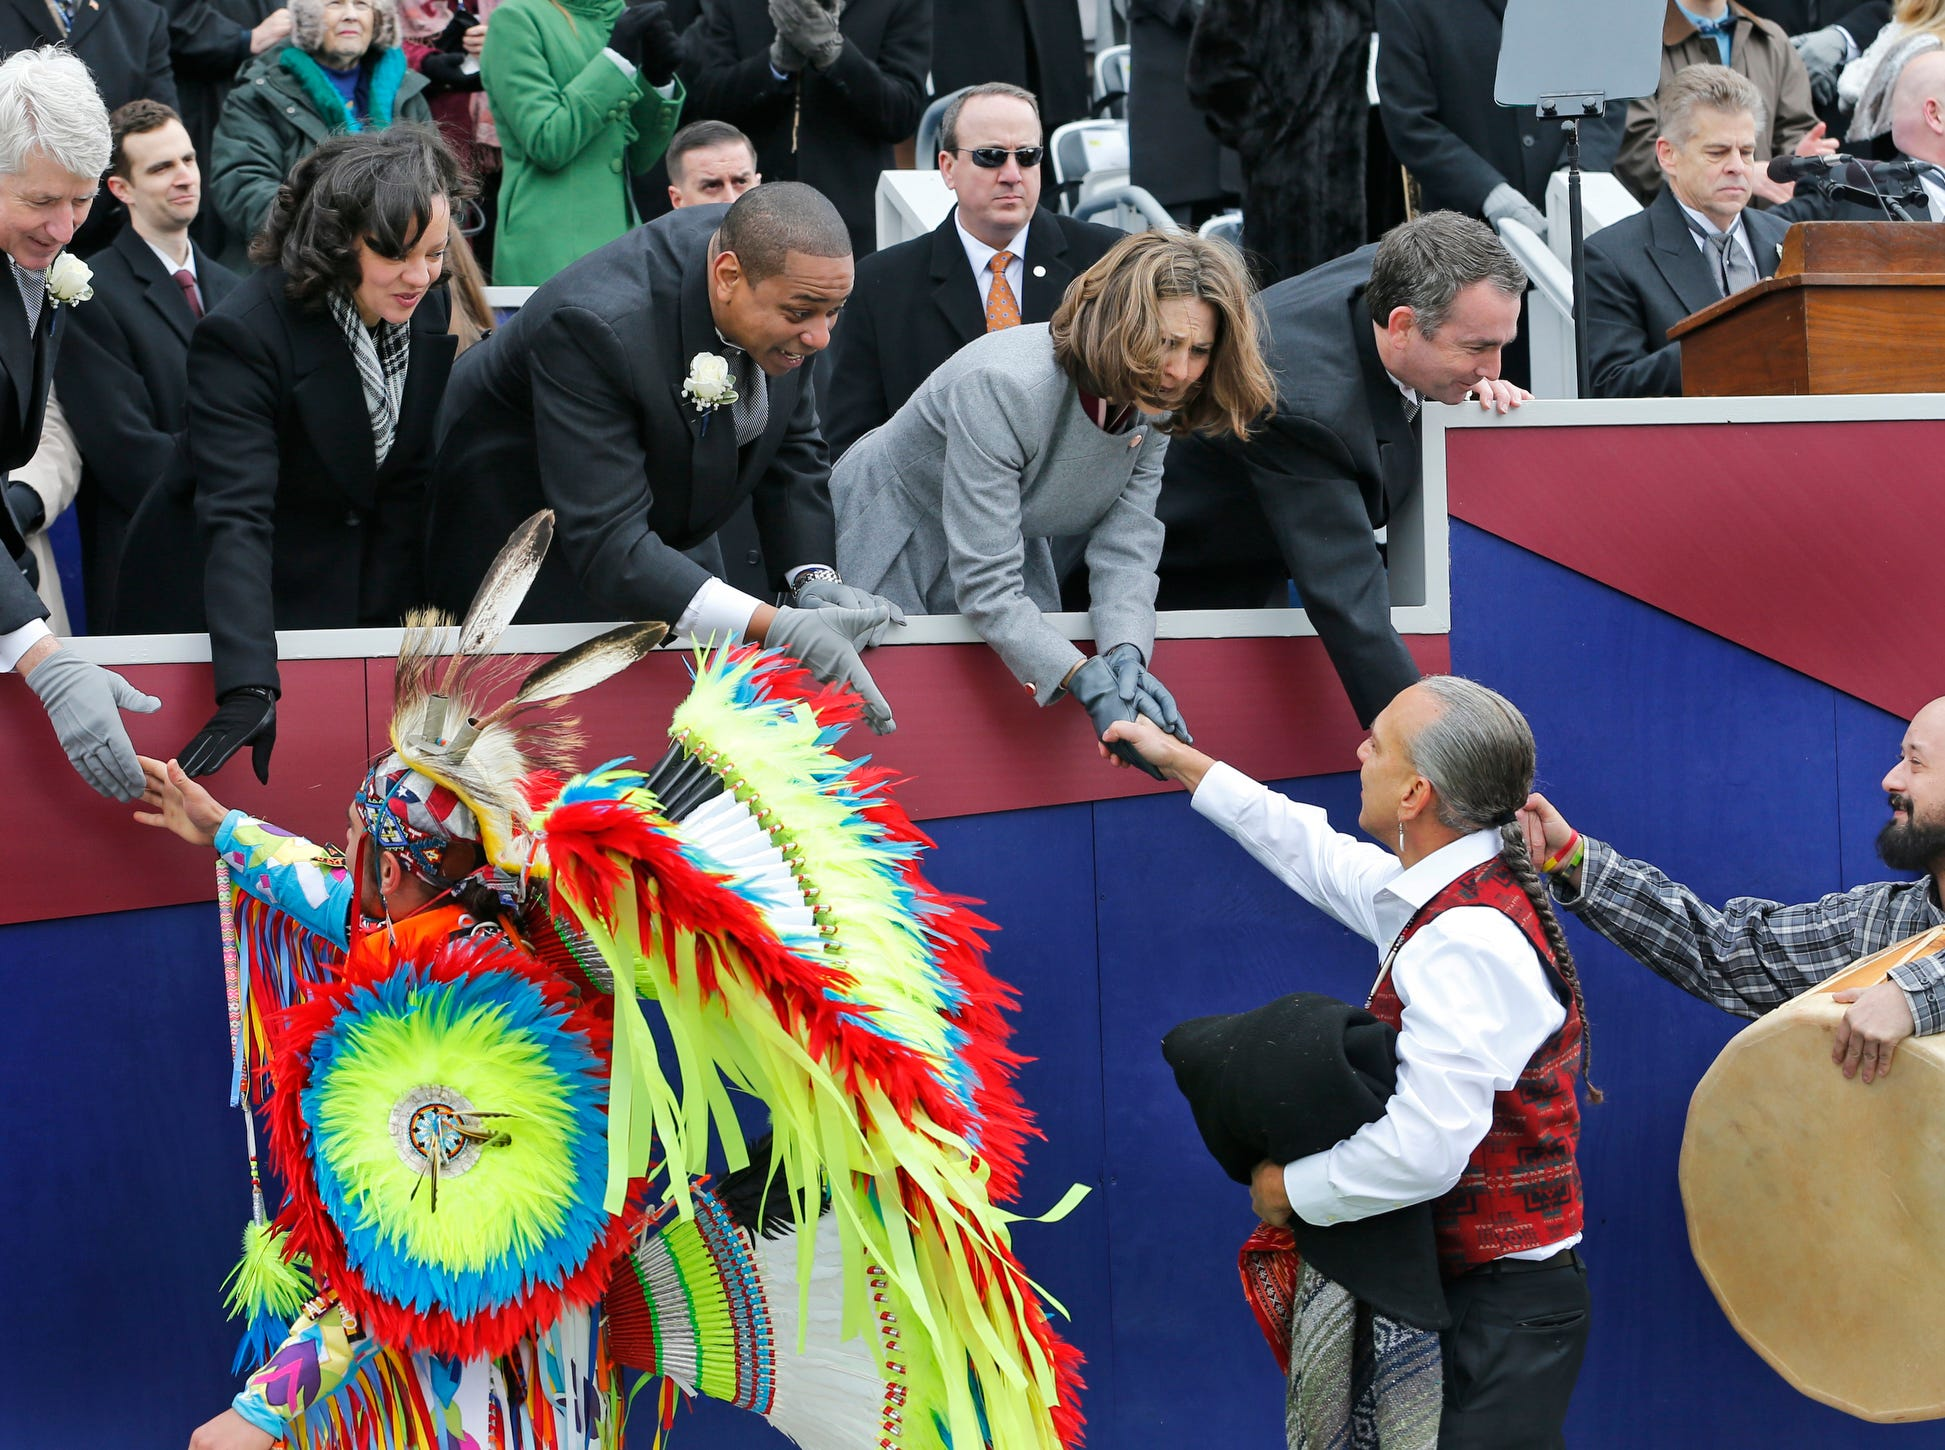 Members of the inaugural party, Attorney General Mark Herring, left, Cerina Fairfax, second from left, Lt. Gov. Justin Fairfax, center; first lady Pam Northam, second from right, and Gov. Ralph Northam greet Native American dancers during inaugural ceremonies at the Capitol in Richmond, Va., Saturday, Jan. 13, 2018. (AP Photo/Steve Helber)